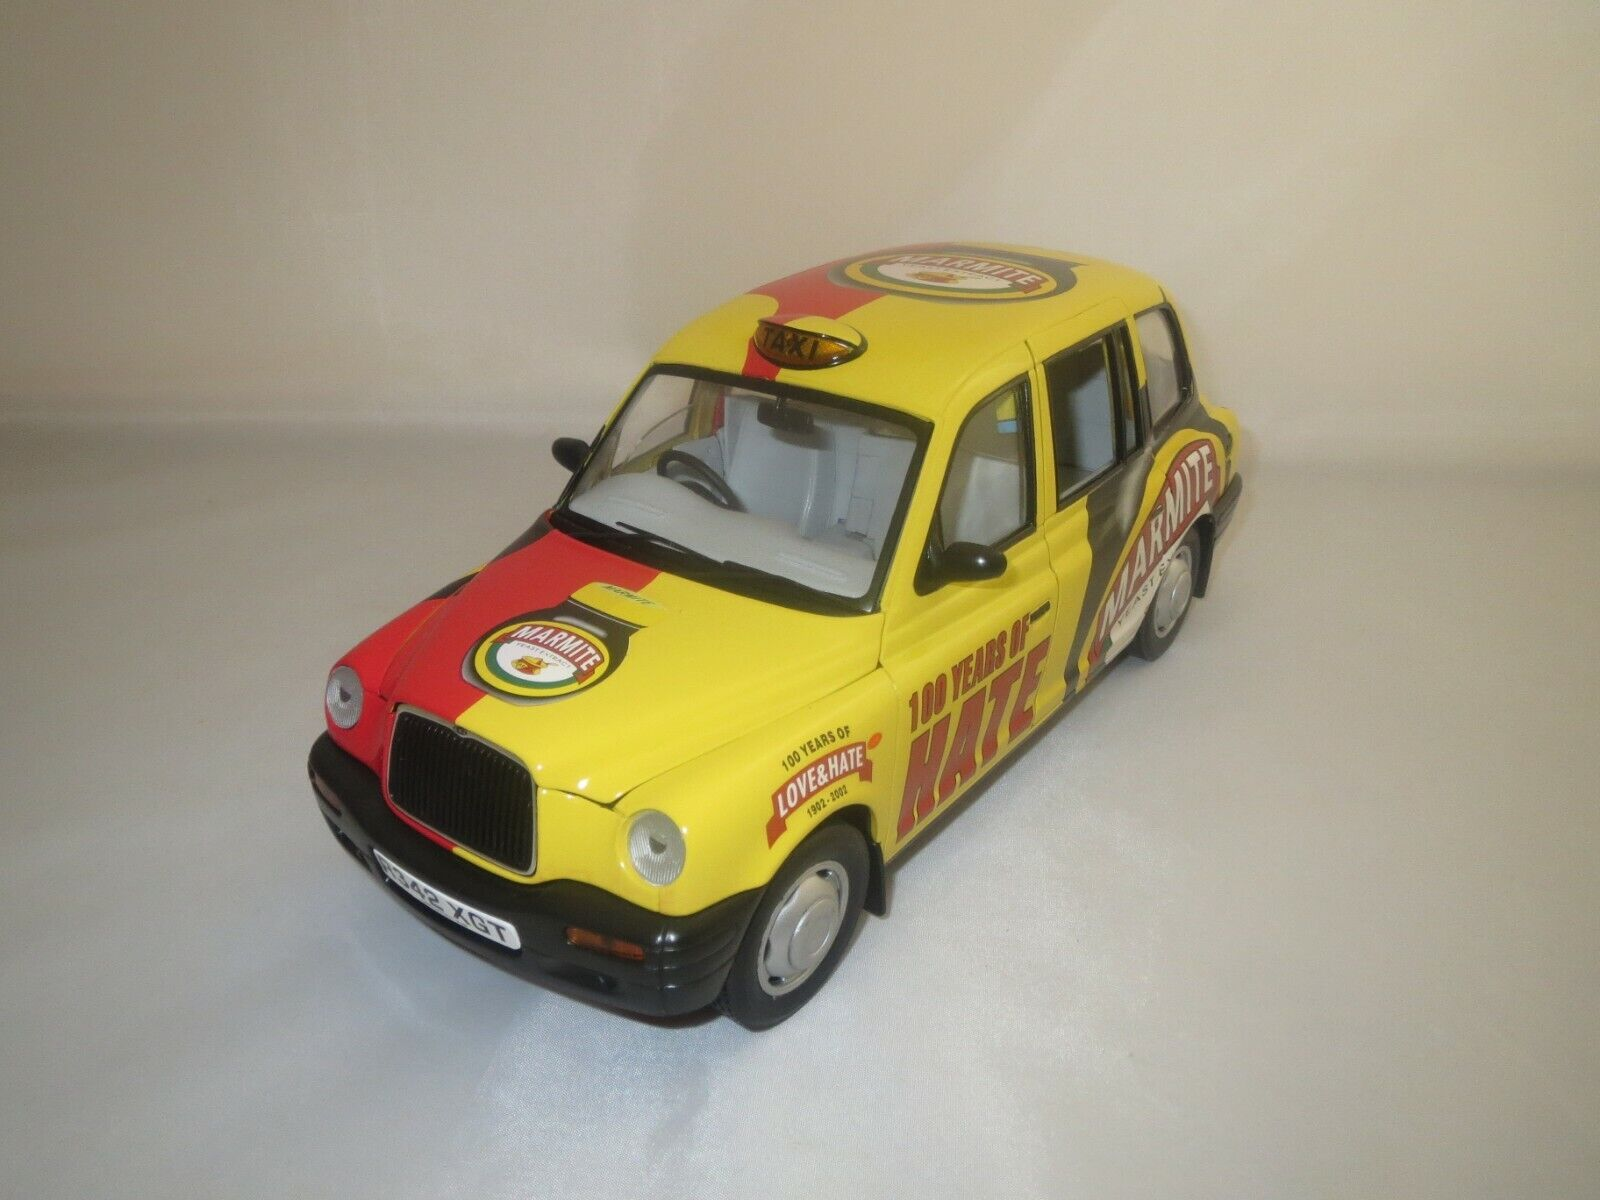 SUN STAR tx1 London Taxi Cab  1998  1 18 sans emballage